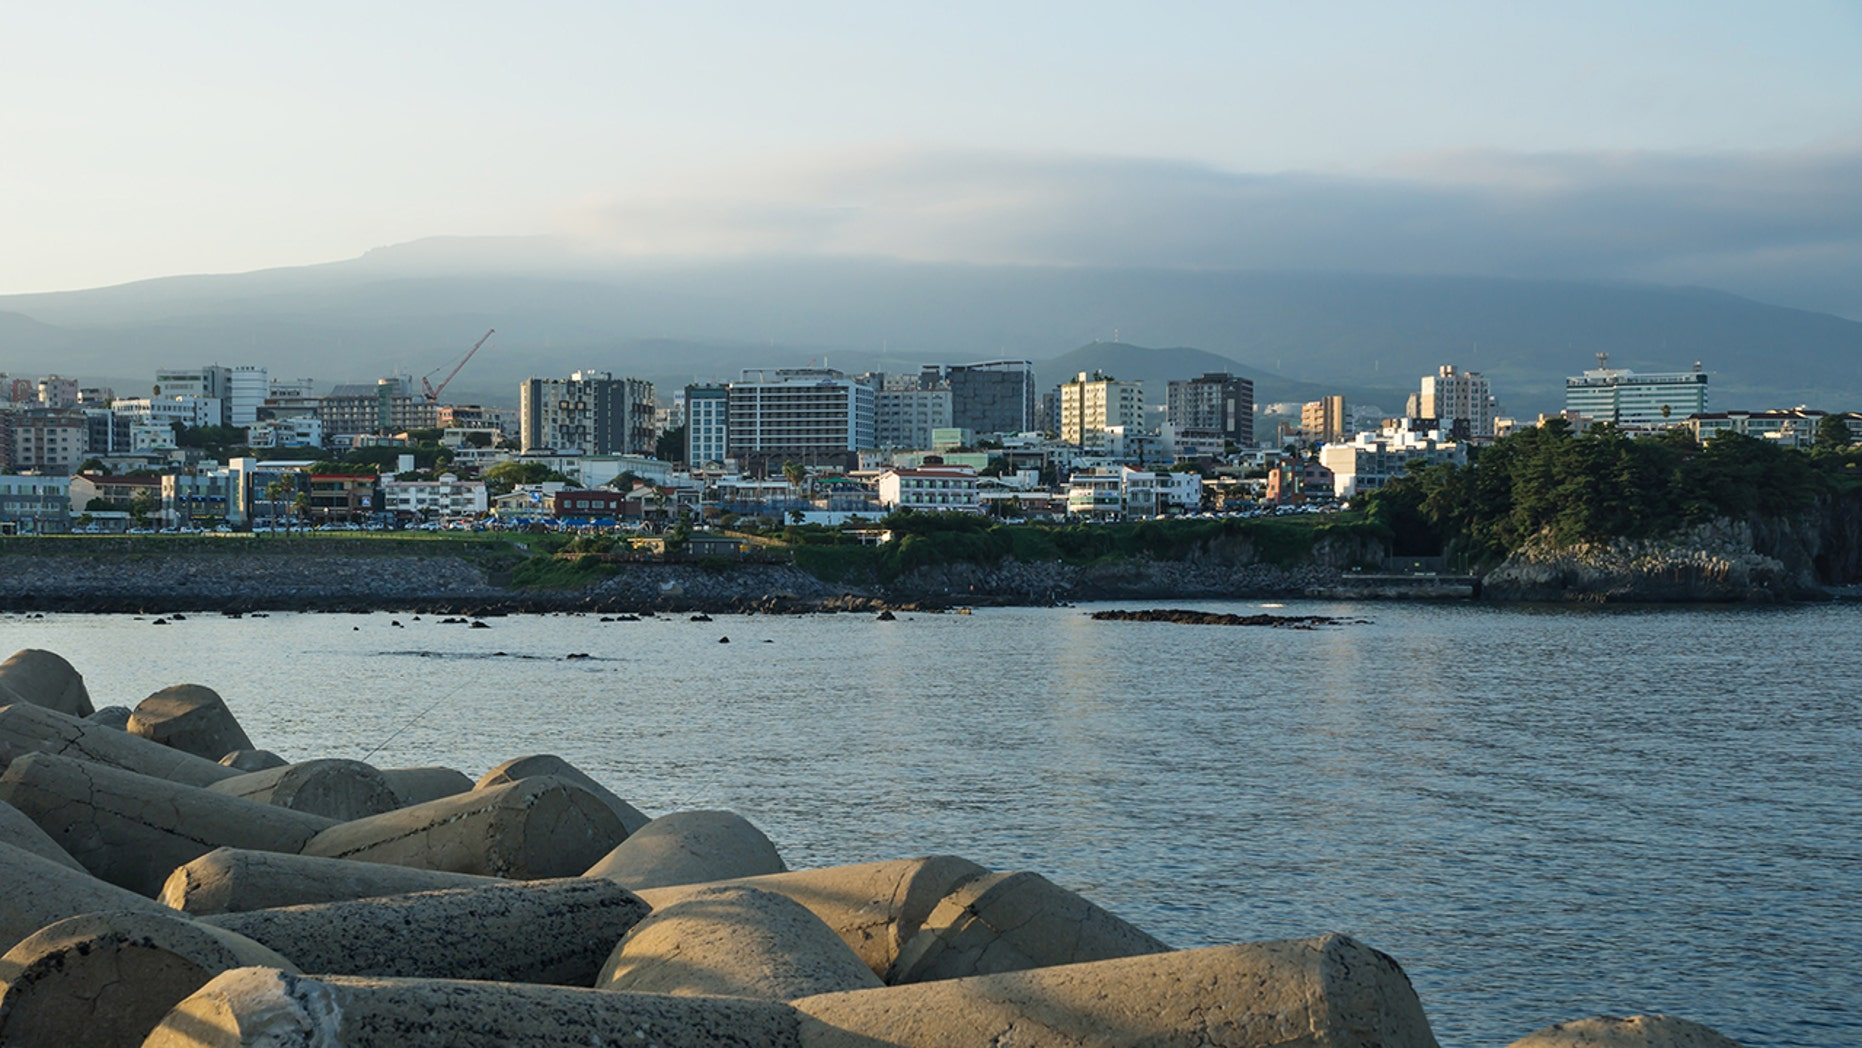 The tourist island of Jeju (pictured) has seen an influx of Yemeni asylum seekers aiming to claim refugee status.